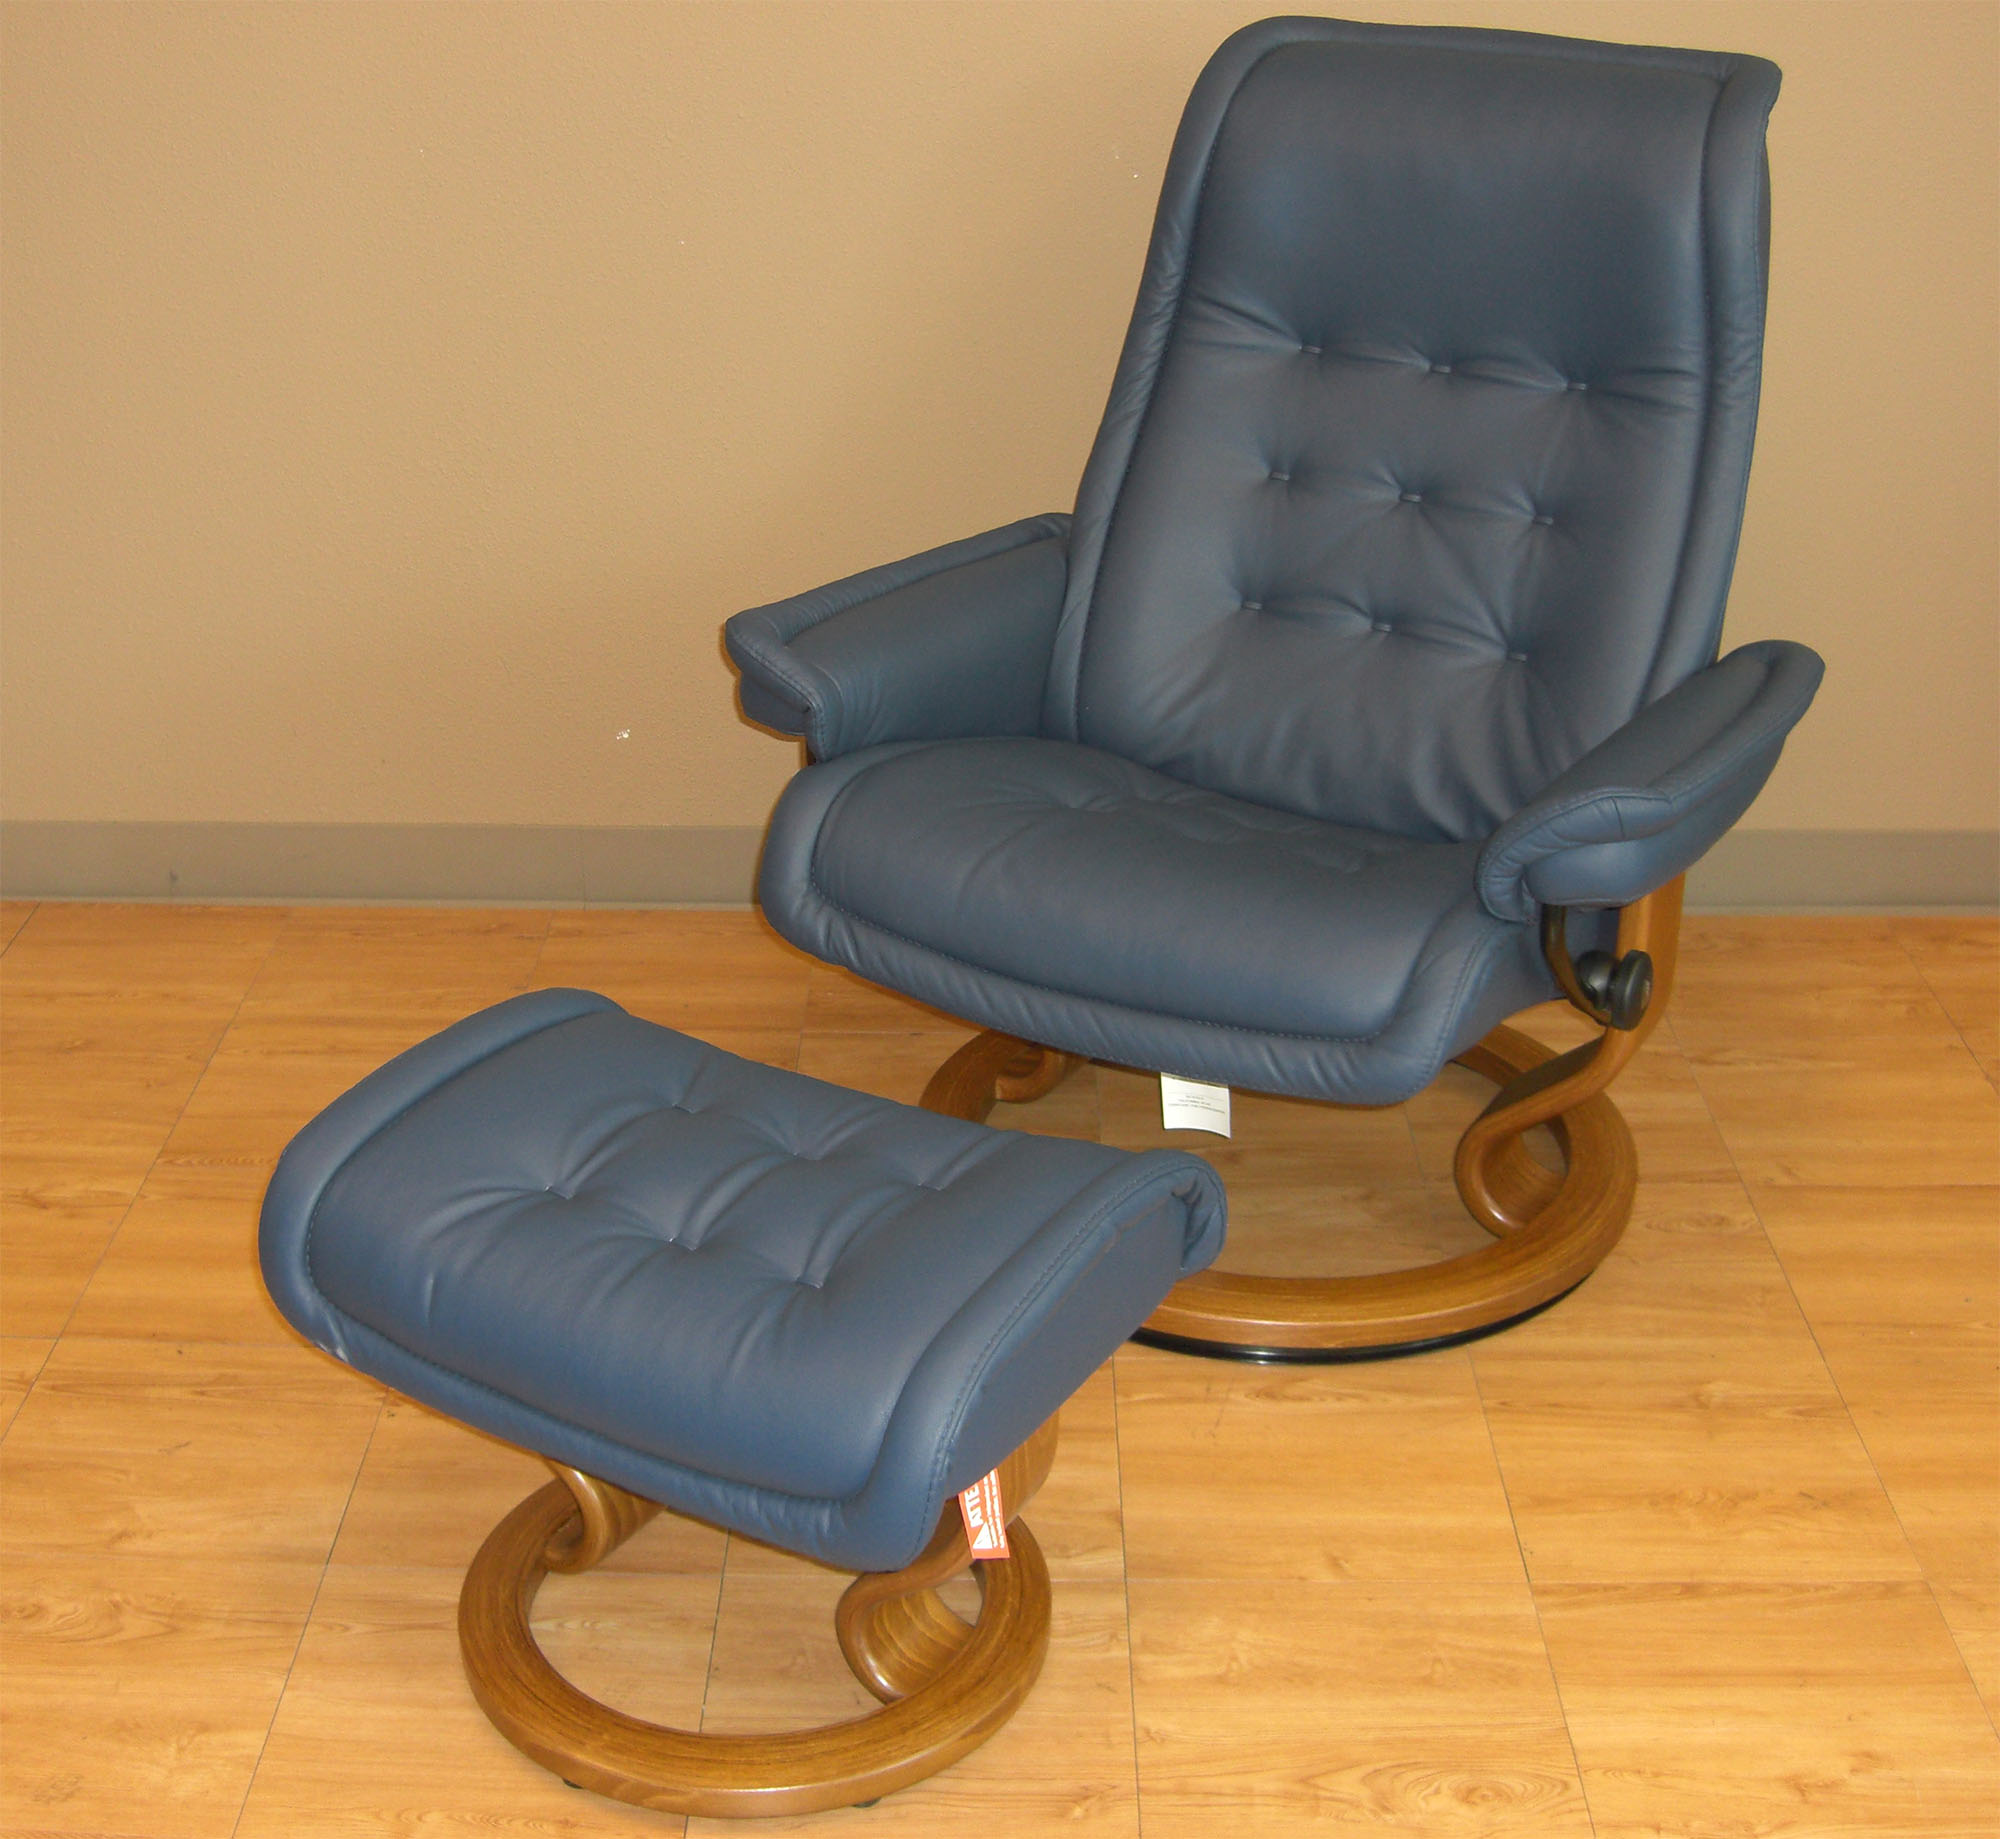 Stressless Royal Chair Paloma Oxford Blue ReclinerLeather by